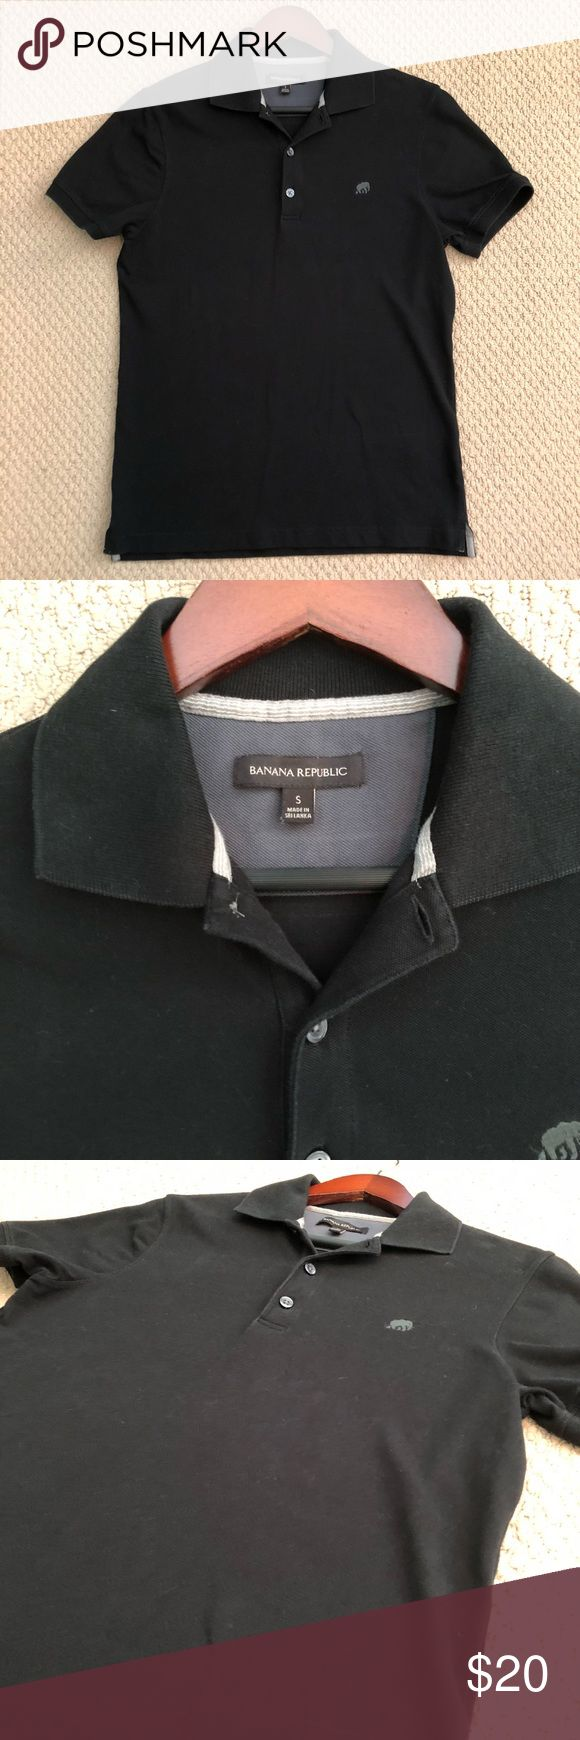 SALE! EUC Solid Black Banana Republic Polo Shirt This polo shirt from Banana Republic is in excellent condition! It's solid black and features the Banana Republic elephant logo on the left chest. Perfect! Size Small Banana Republic Shirts Polos